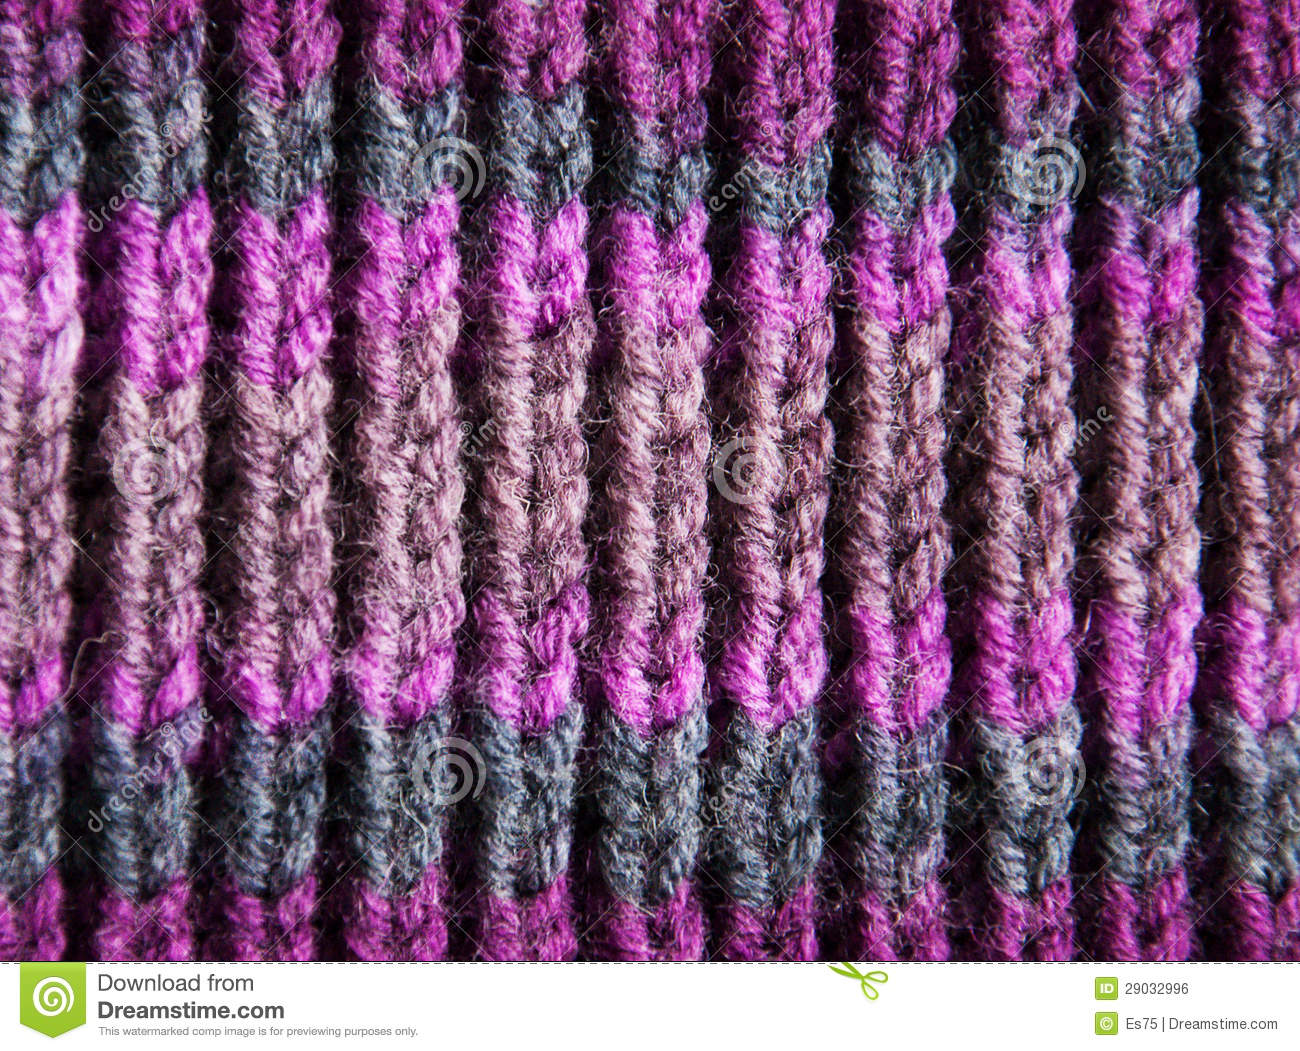 Woolen Knitting Patterns : Wool Patterns Royalty Free Stock Image - Image: 29032996